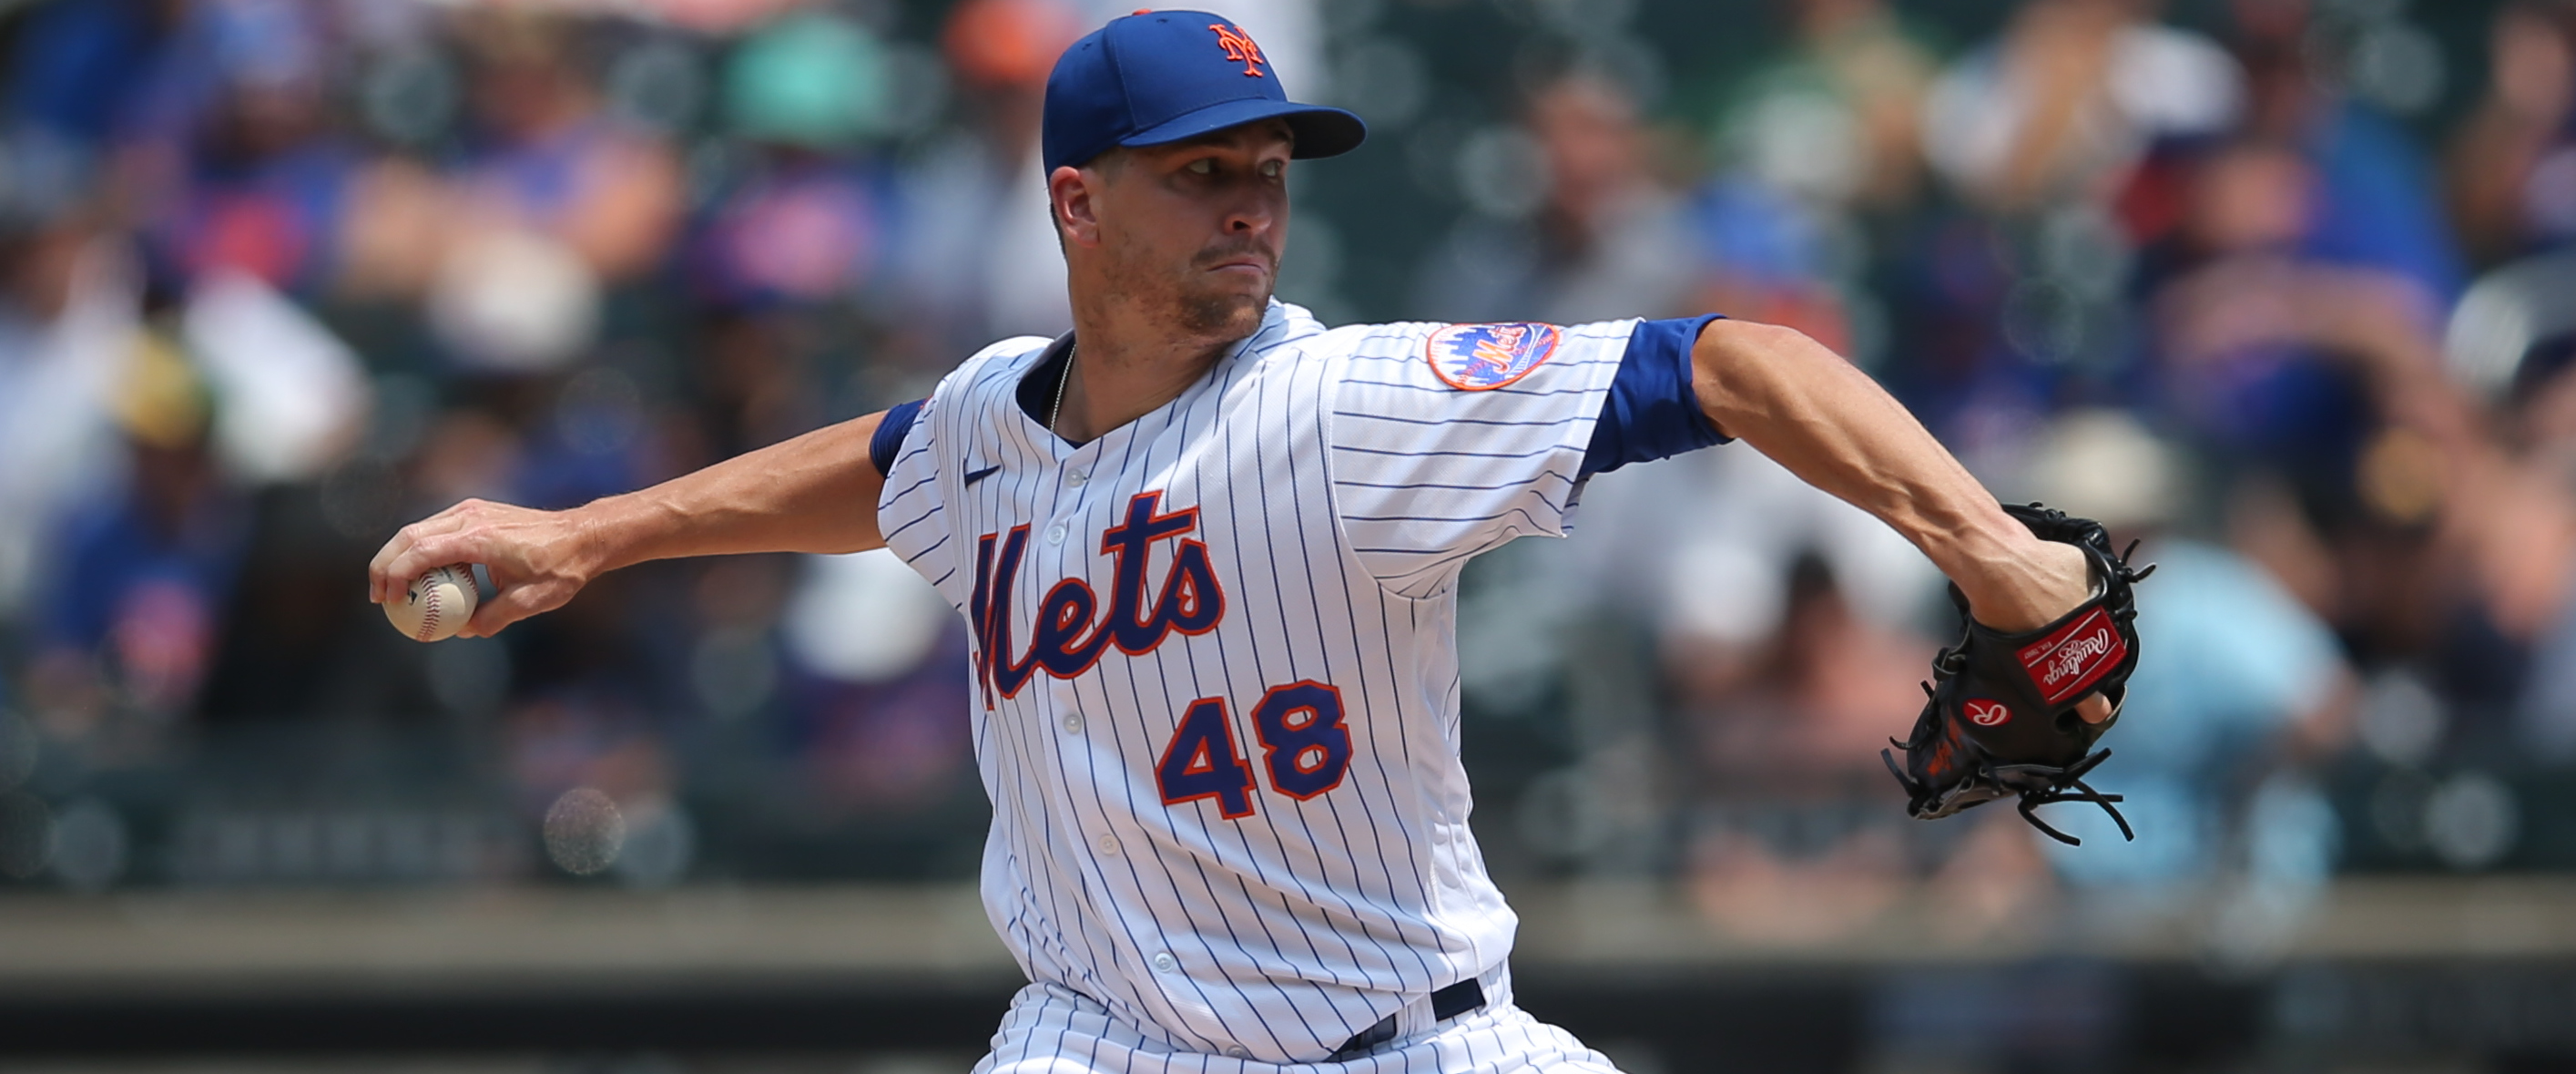 A Look Back on the 2021 Mets First Half